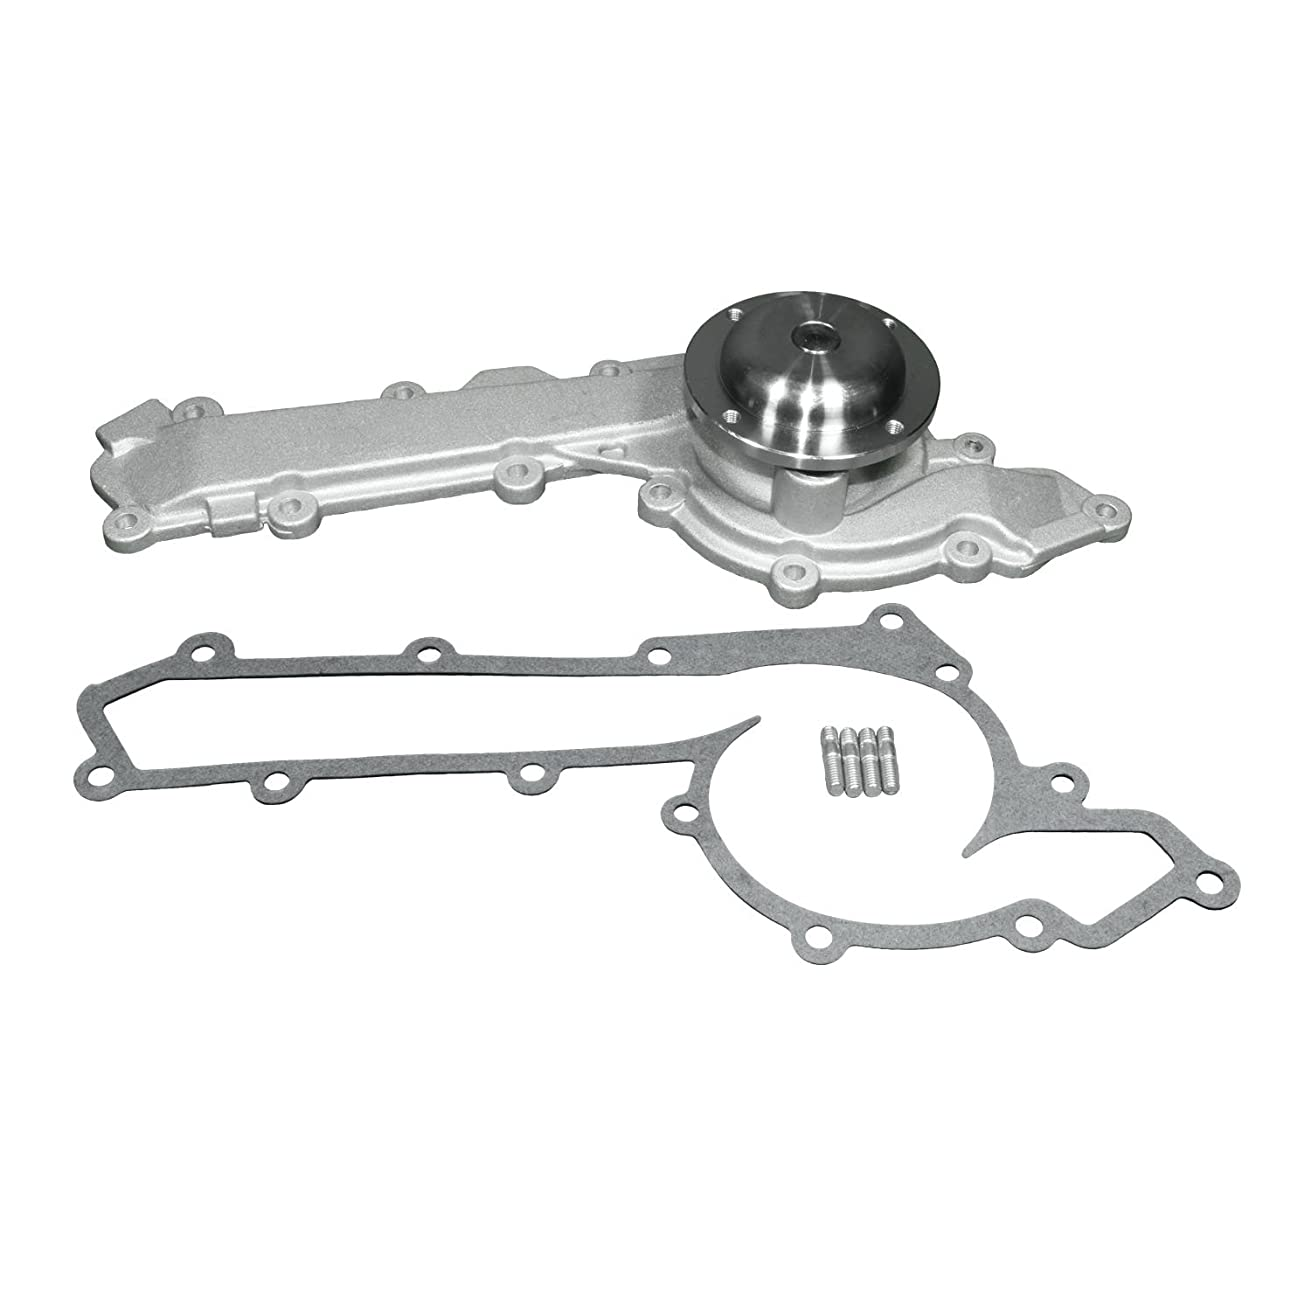 ACDelco 252-775 Professional Water Pump Kit